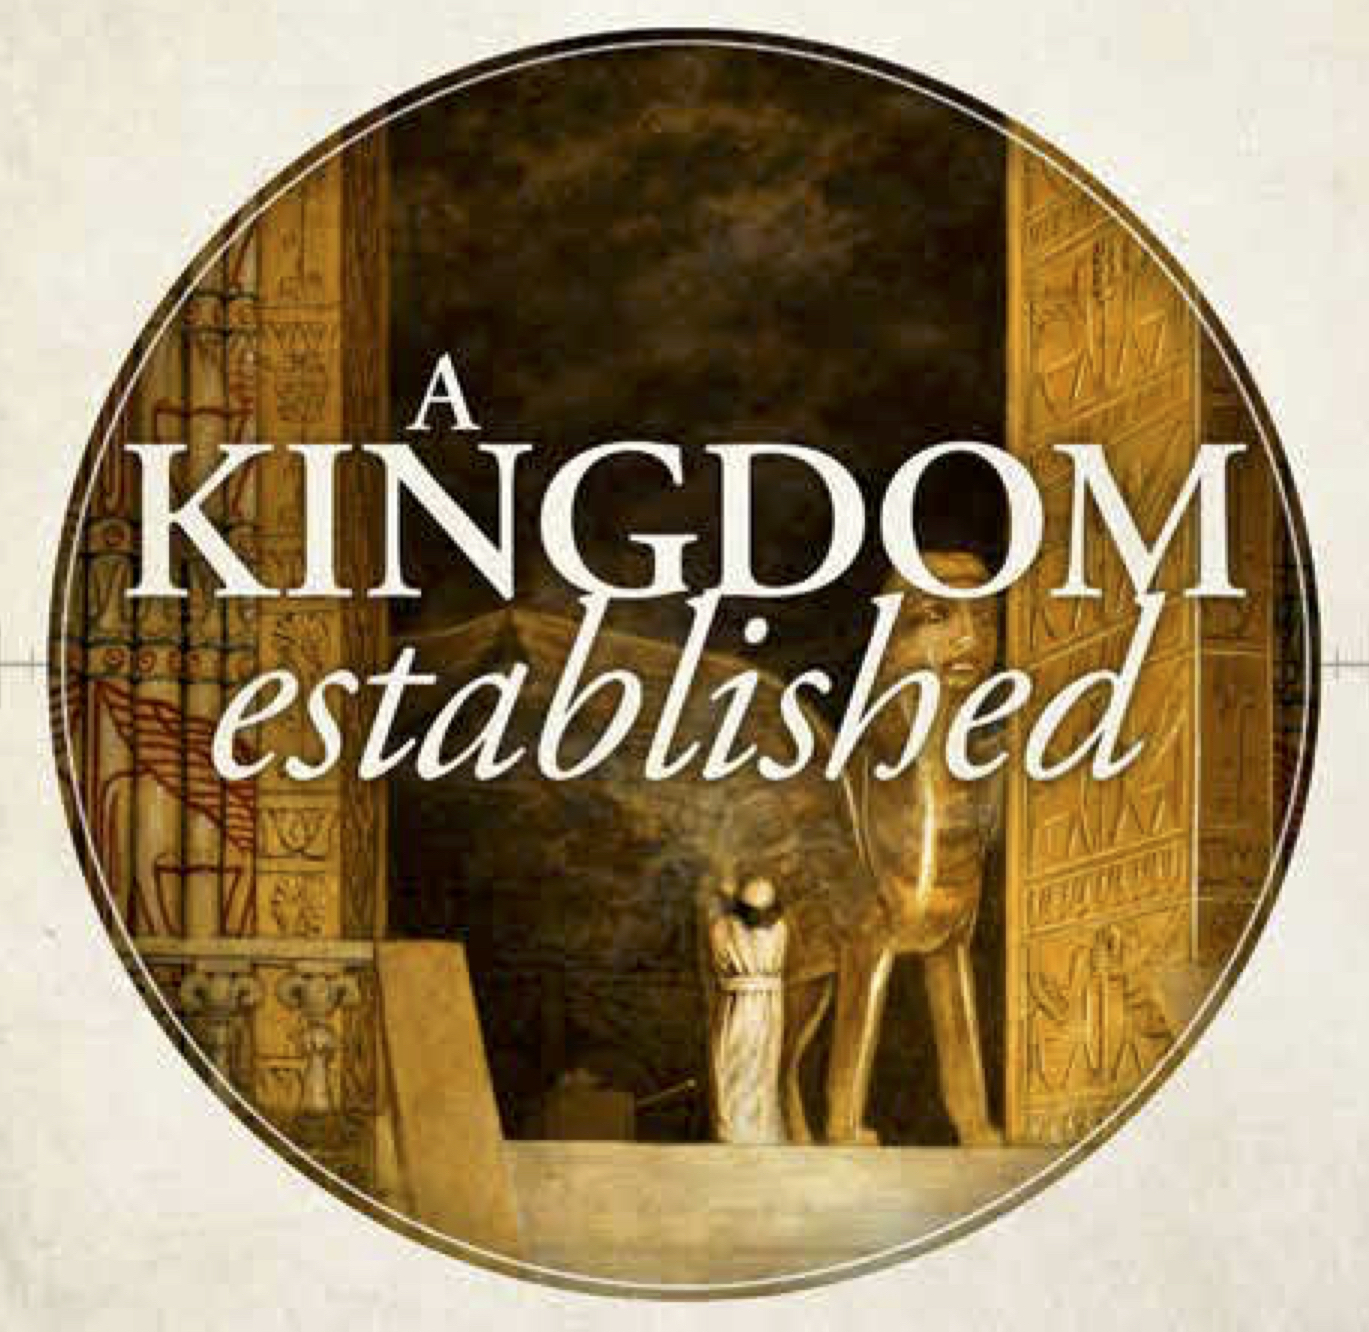 A Kingdom Established: The Meaning of Life